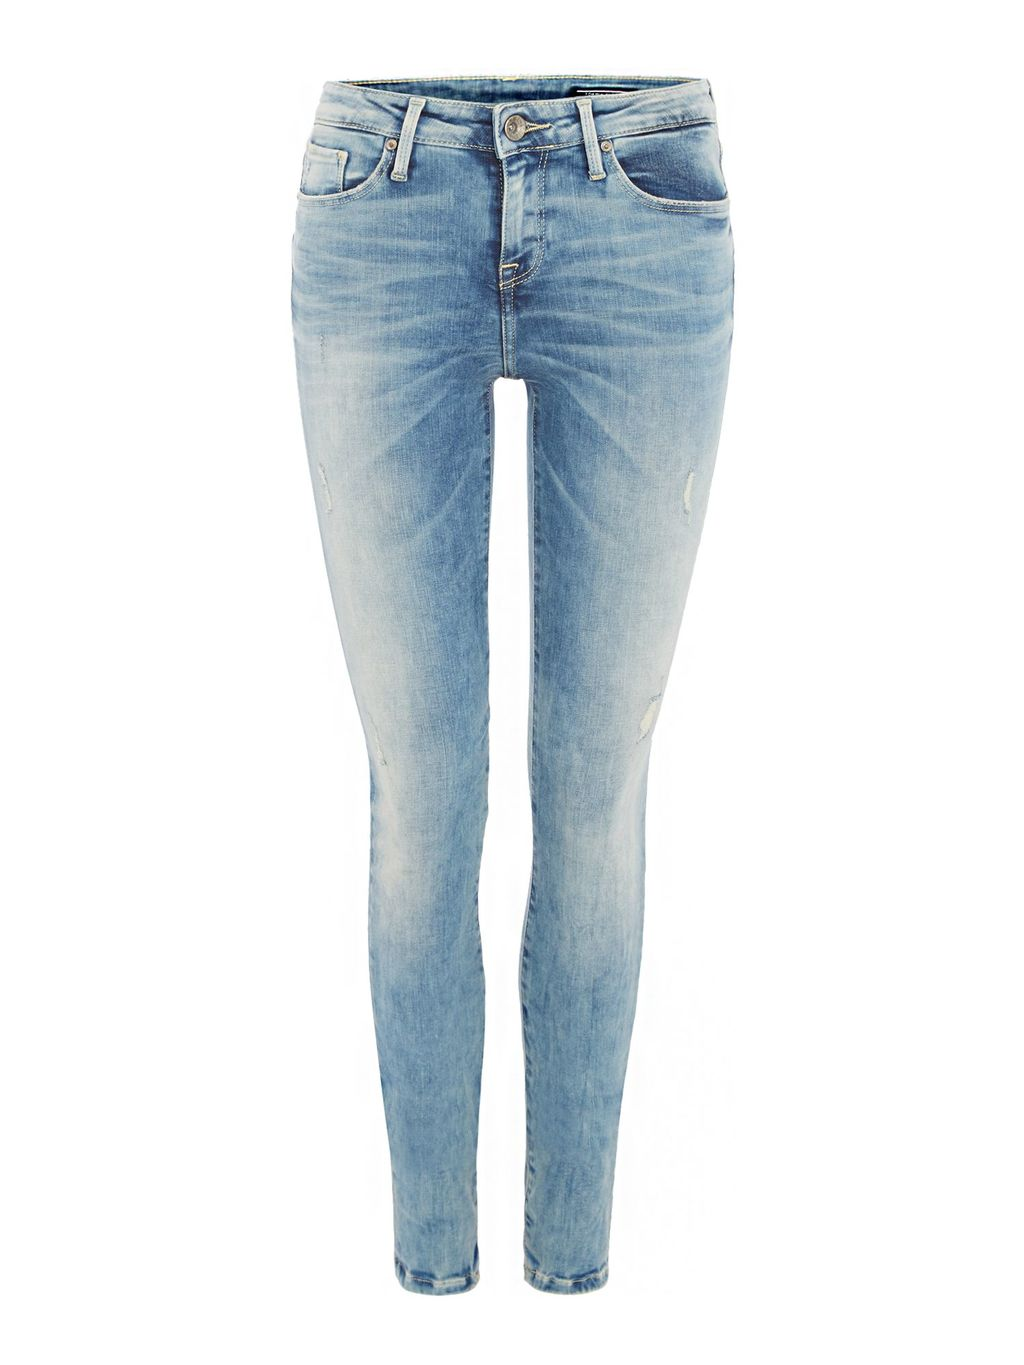 Como Nora Jeans, Navy - style: skinny leg; length: standard; pattern: plain; pocket detail: traditional 5 pocket; waist: mid/regular rise; predominant colour: pale blue; occasions: casual; fibres: cotton - stretch; jeans detail: whiskering; texture group: denim; pattern type: fabric; season: s/s 2016; wardrobe: basic